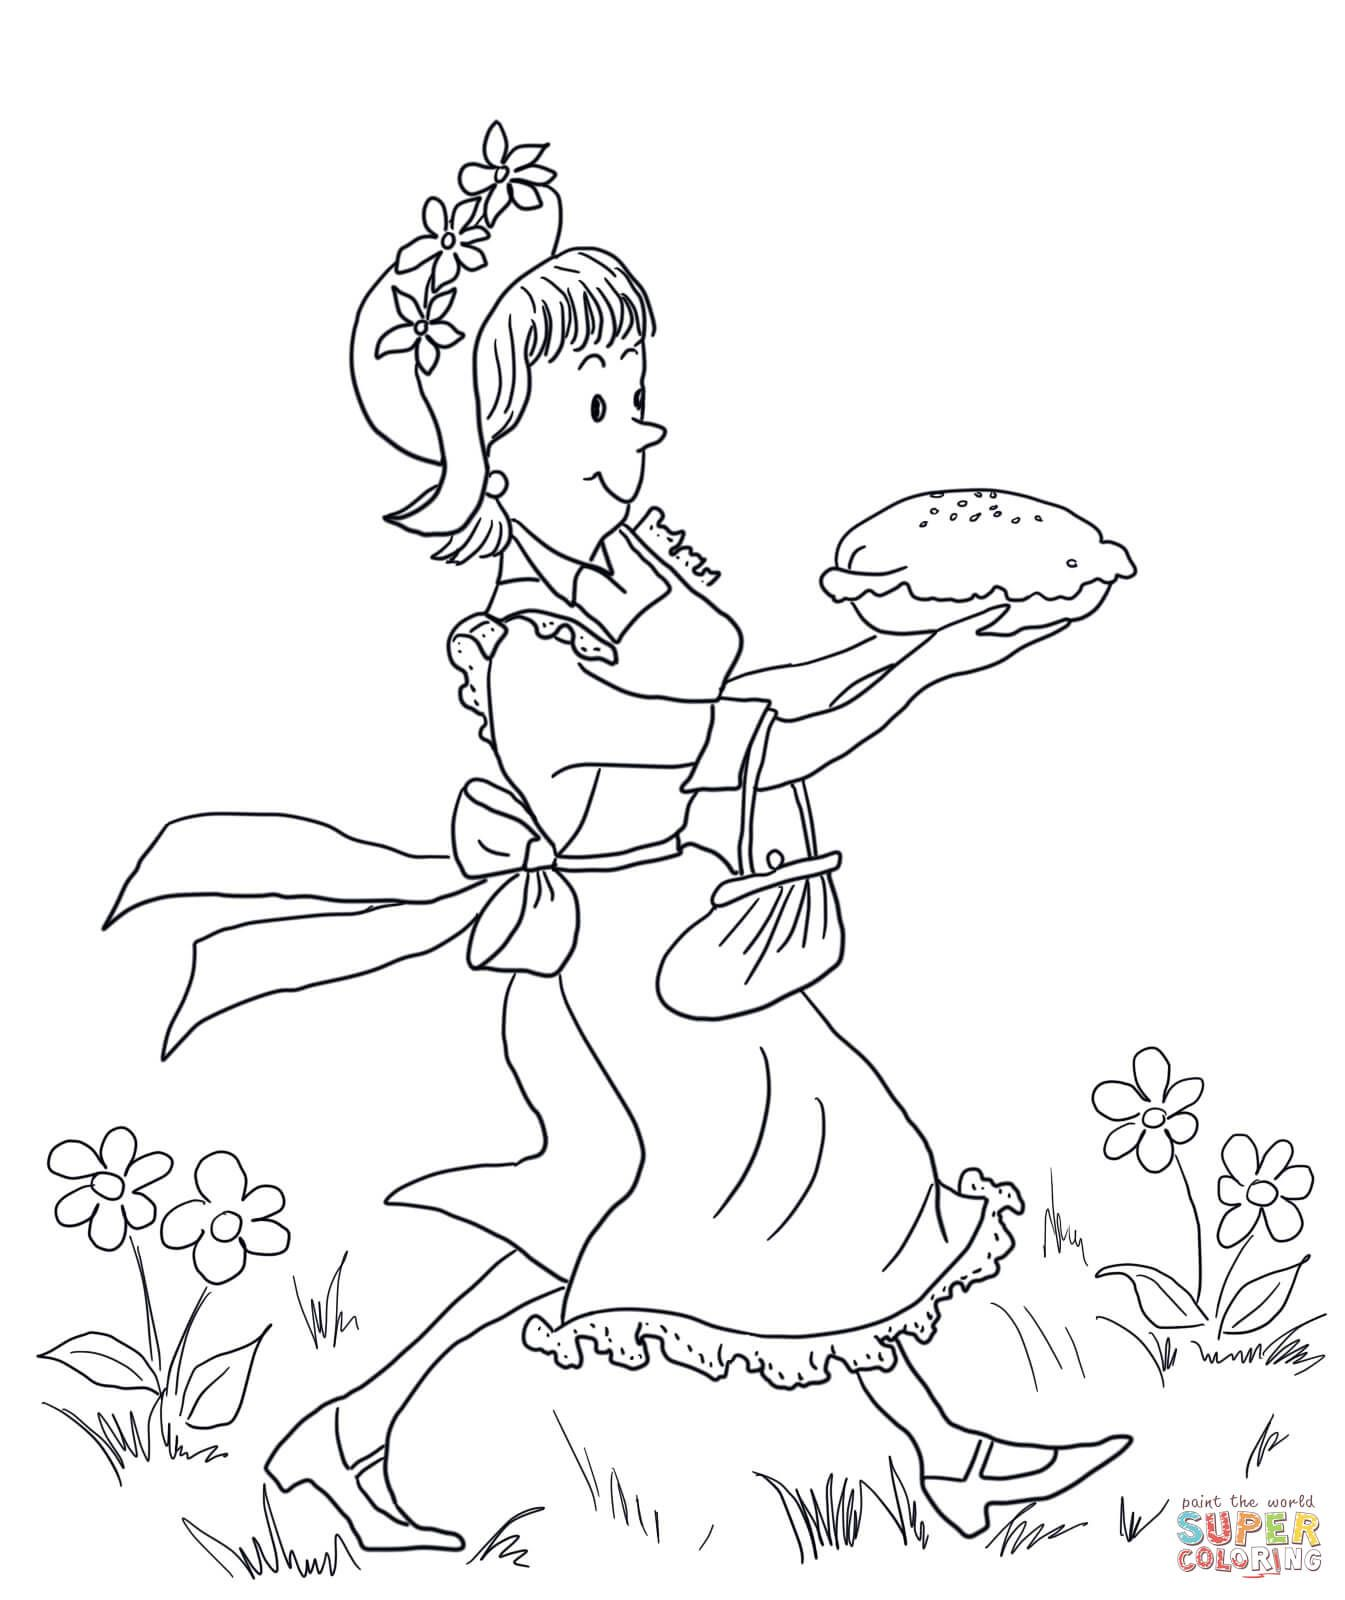 Amelia Bedelia Carrying Lemon Meringue Pie Super